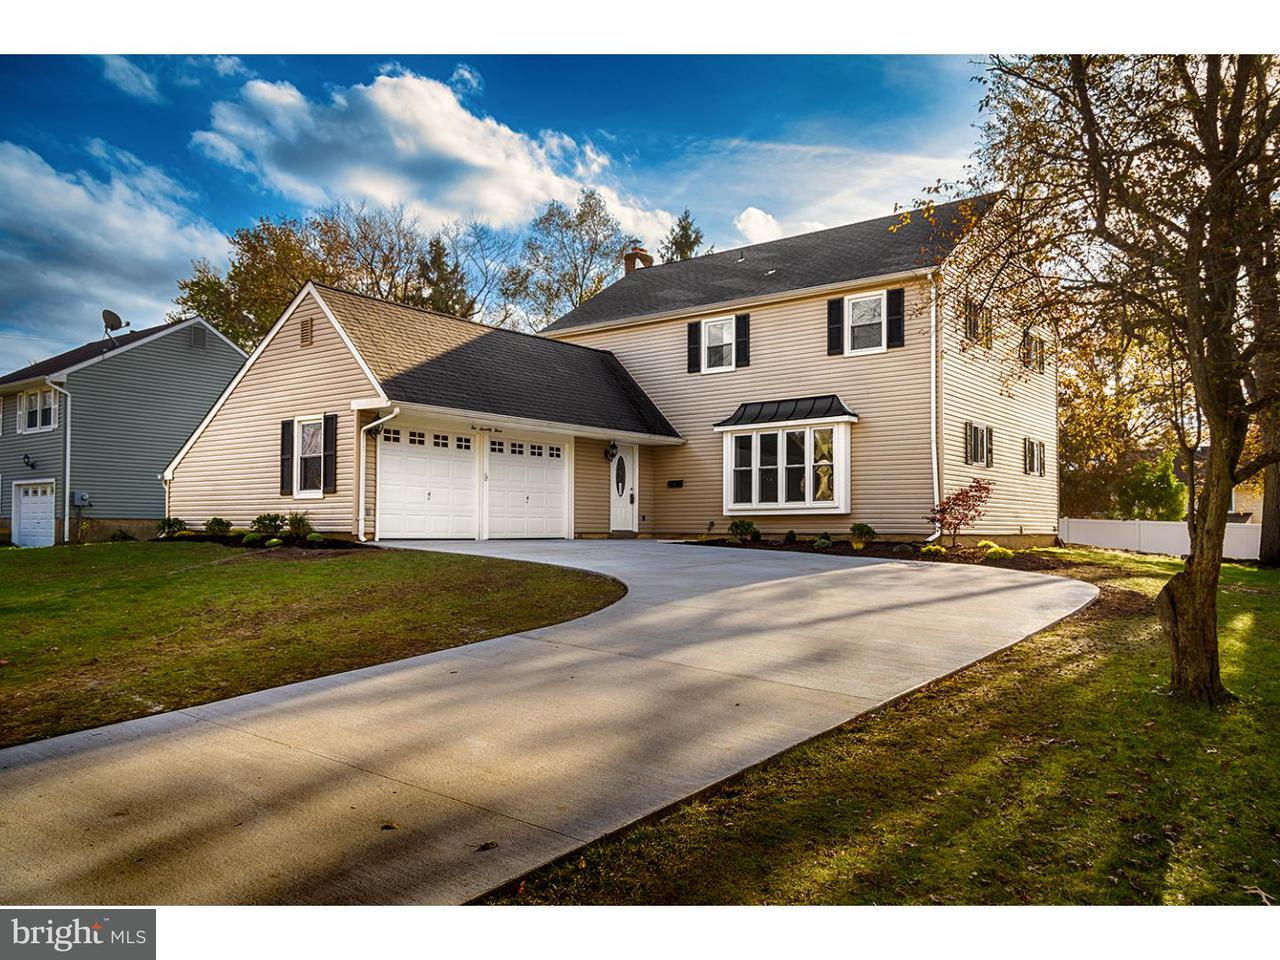 Single Family Home for Sale at 273 BURNING TREE Road Delran Township, New Jersey 08075 United States